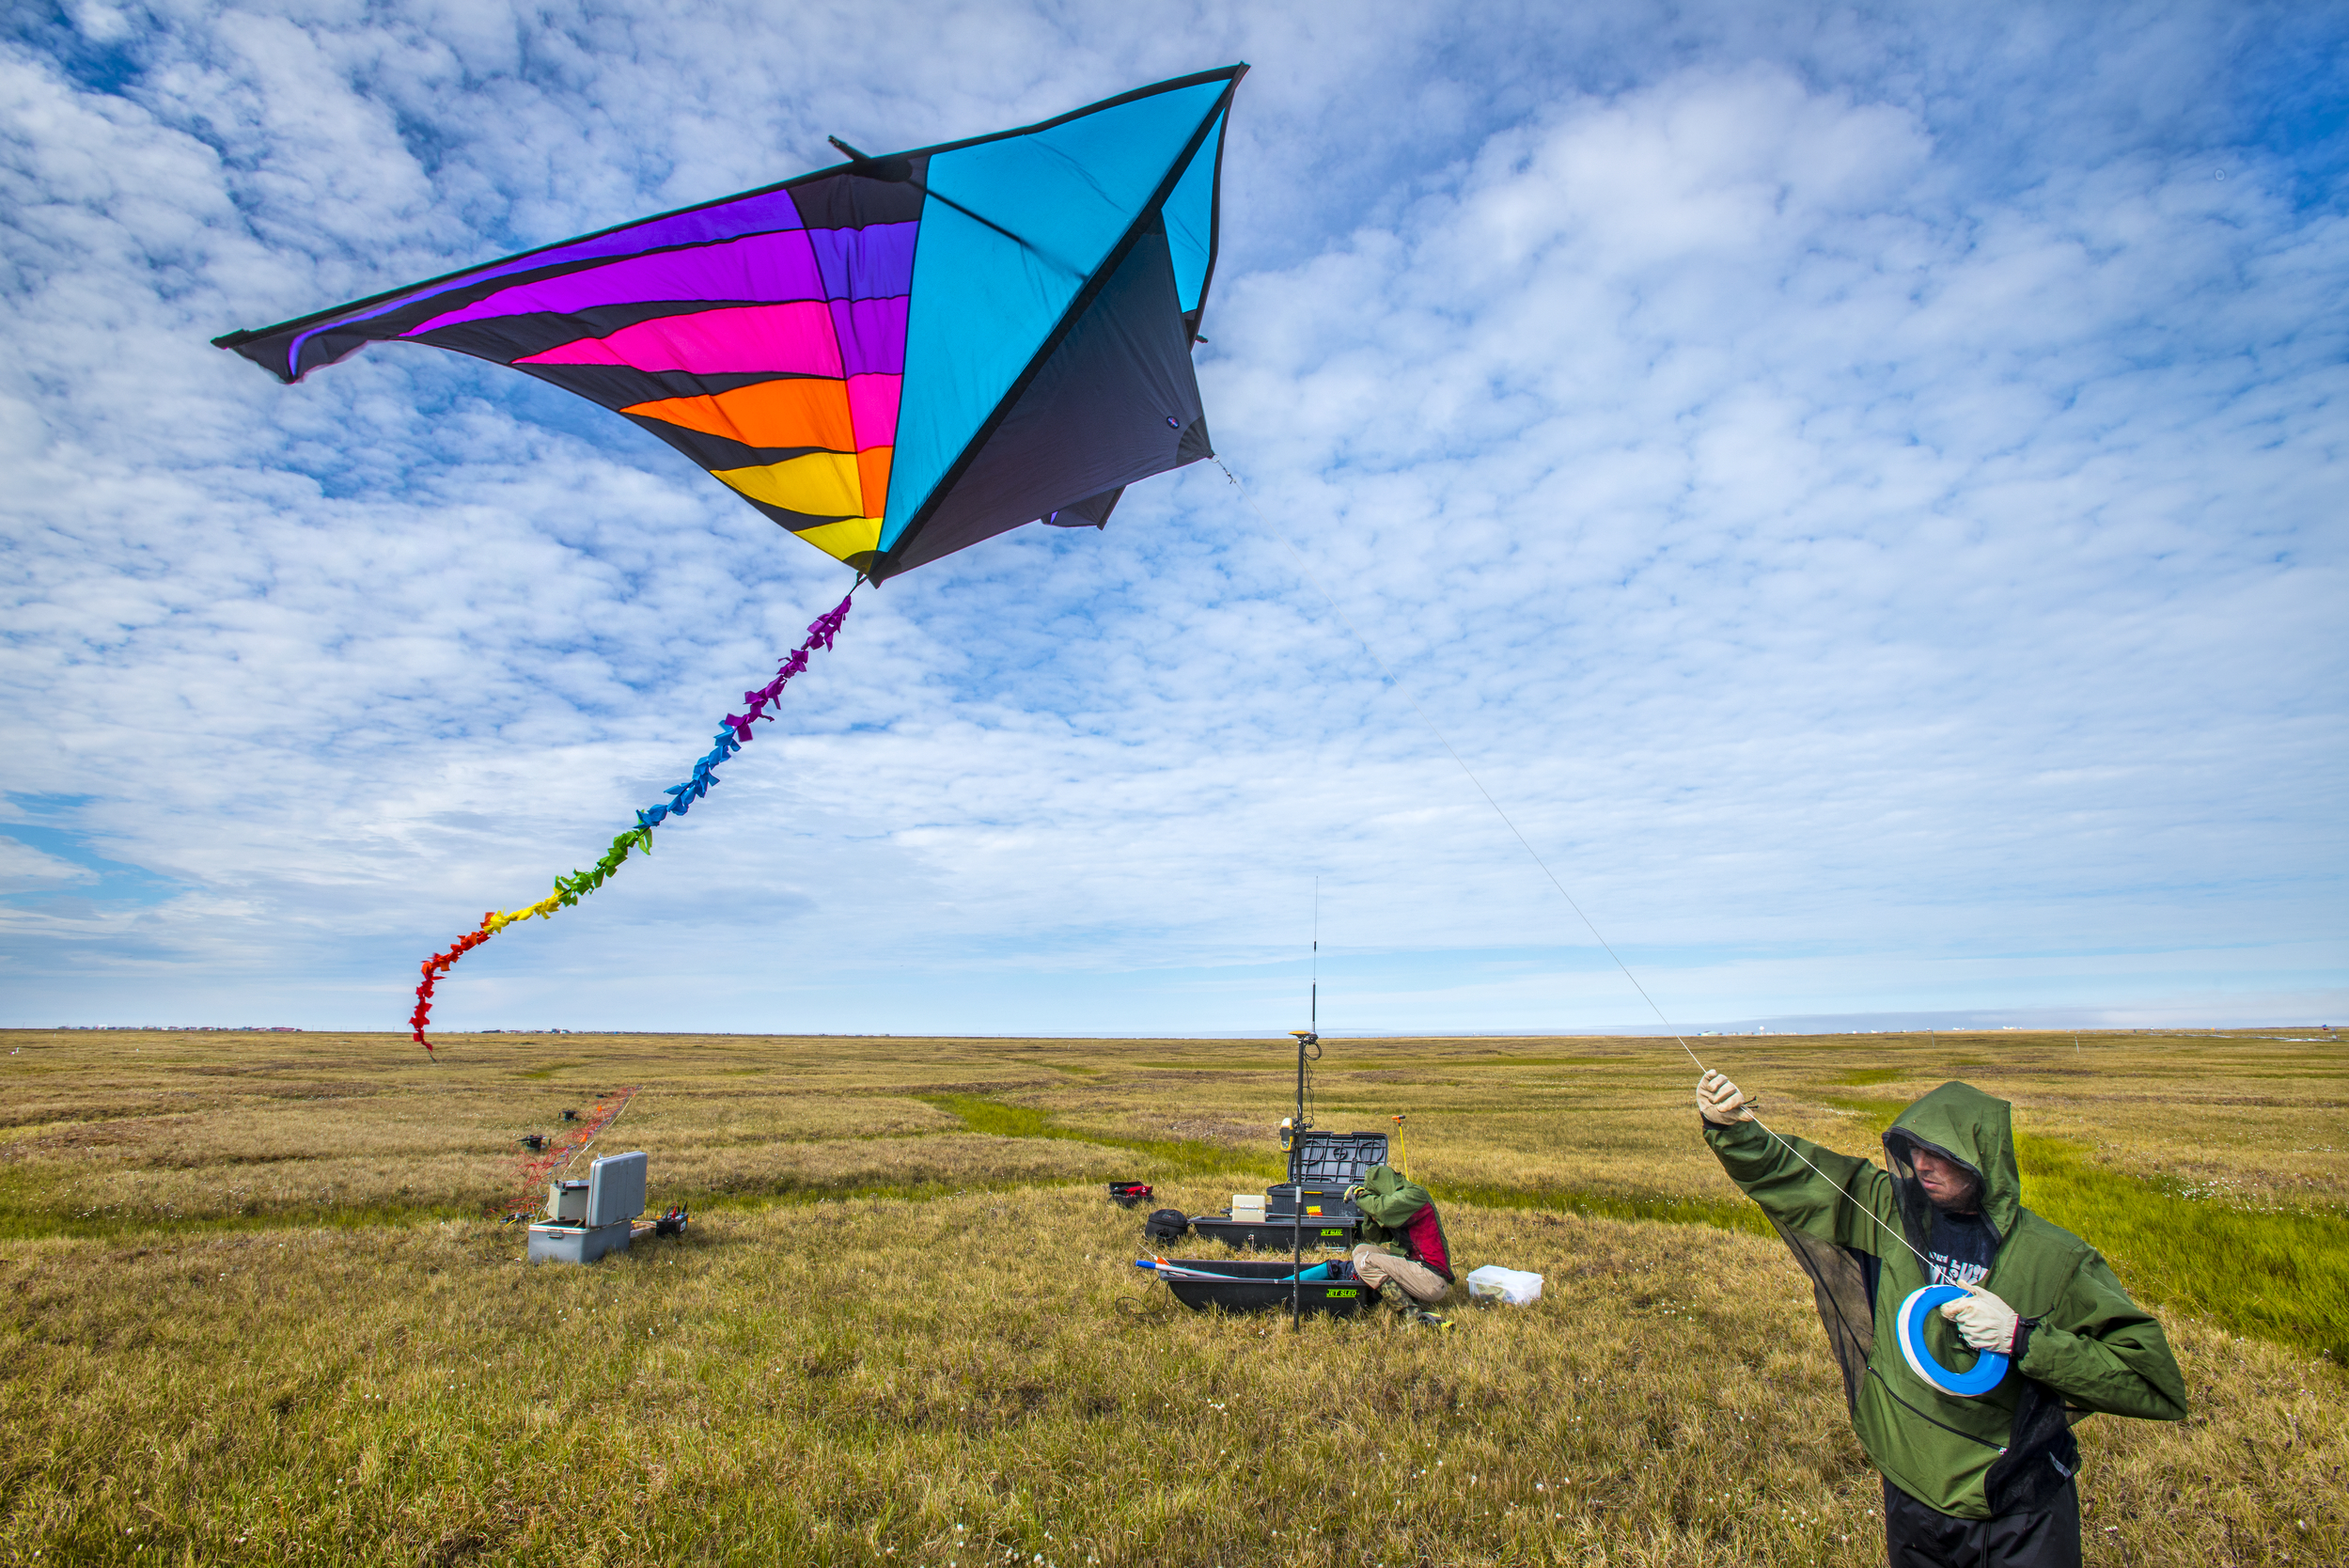 Craig Ulrich collecting imagery of the land surface using sensors mounted on a kite.